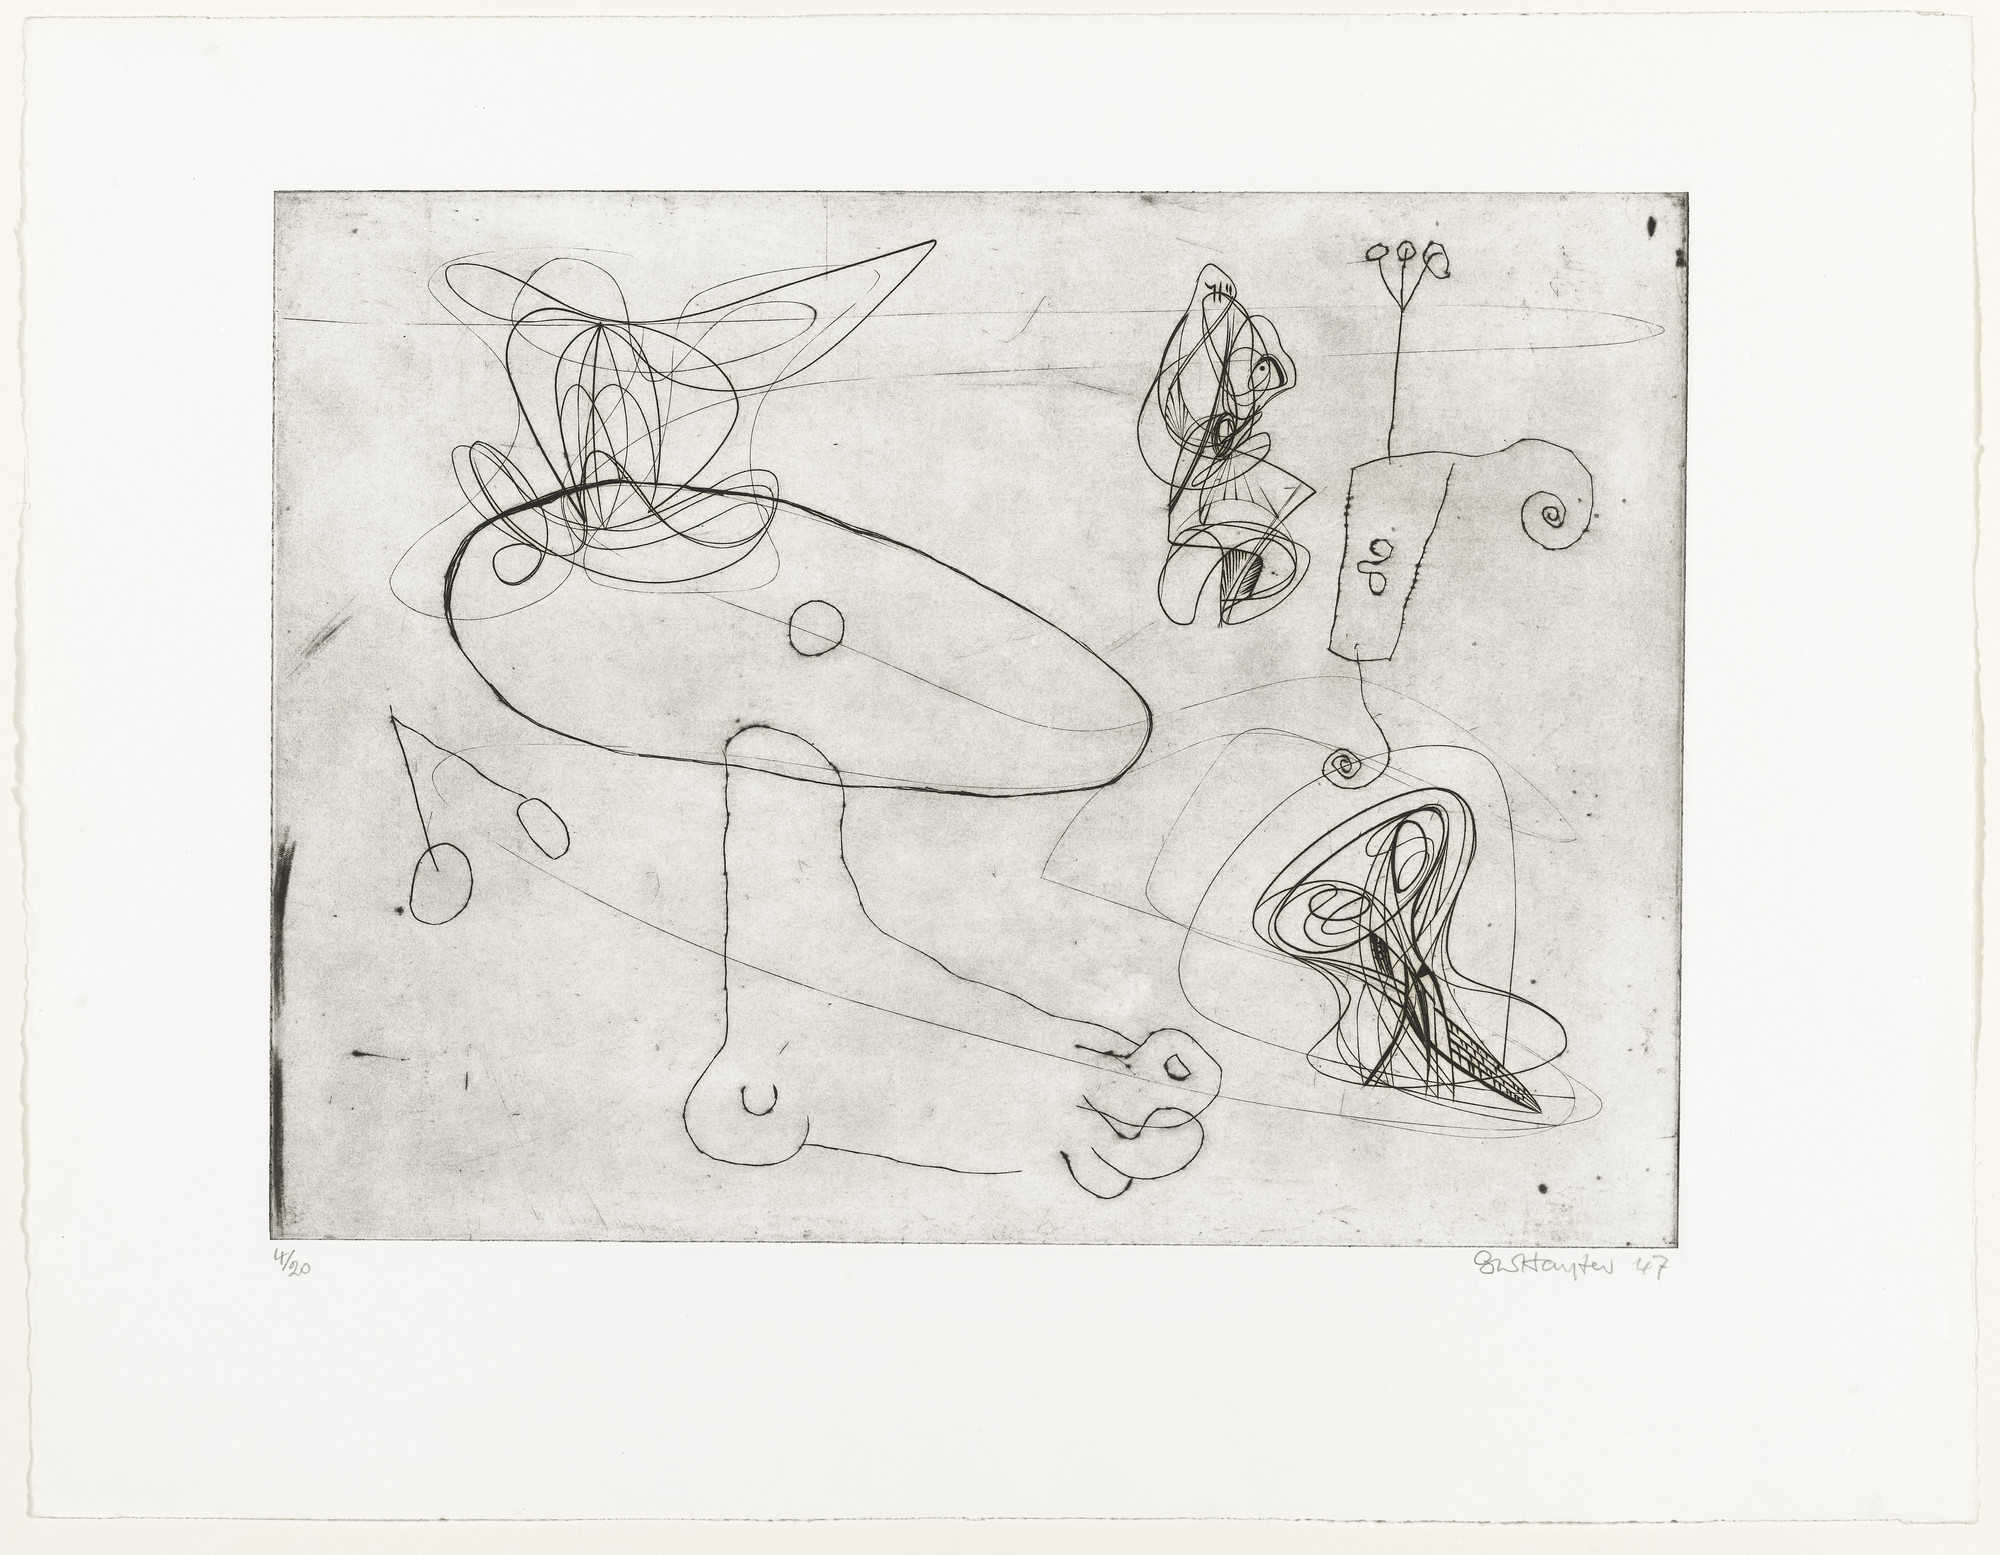 Stanley William Hayter, Joan Miró. Untitled. 1947, published 1982